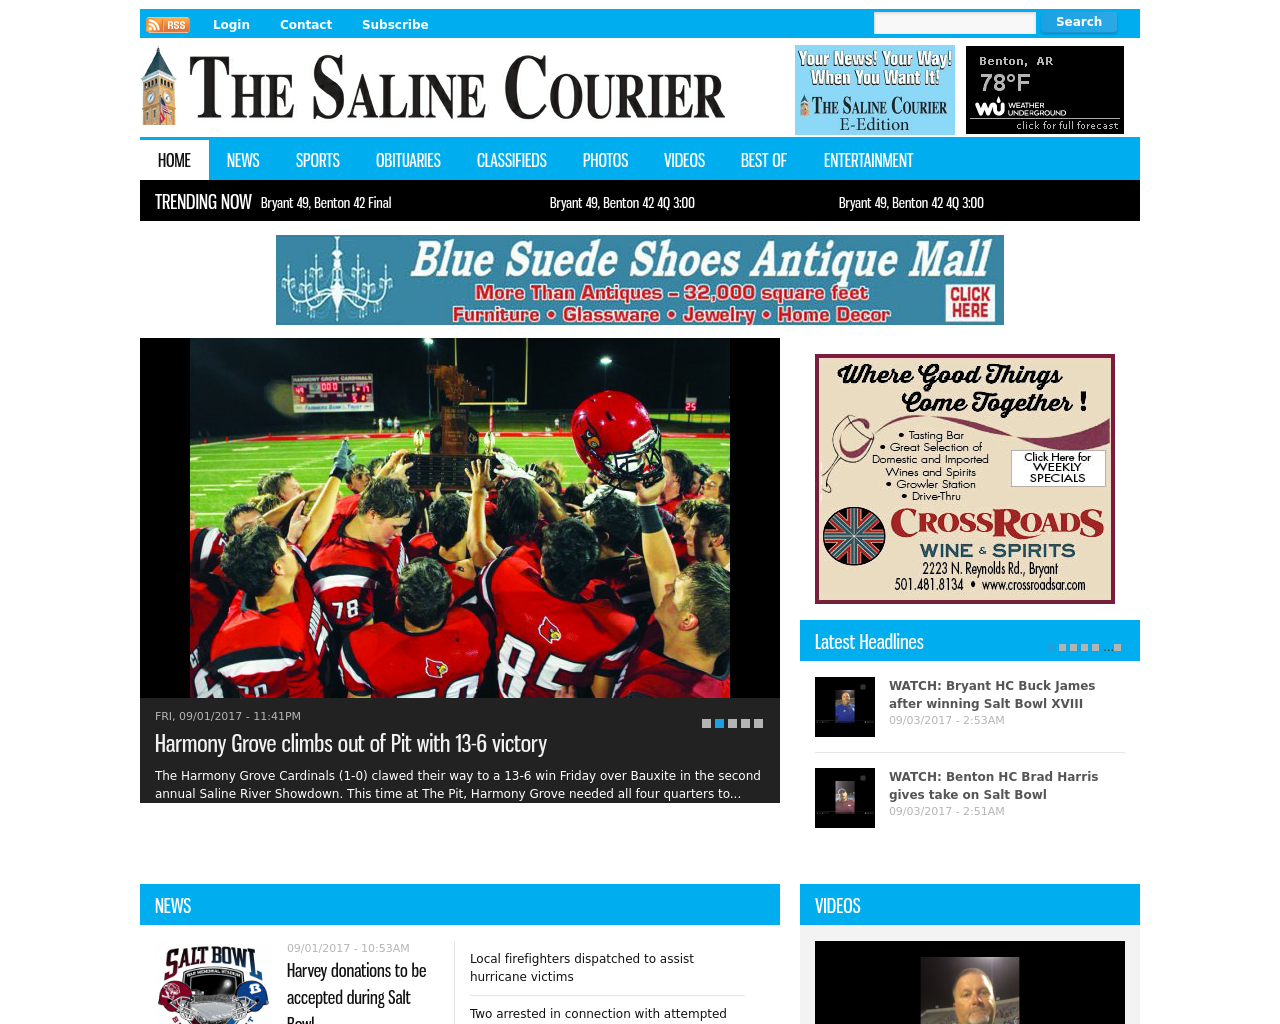 The-Saline-Courier-Advertising-Reviews-Pricing